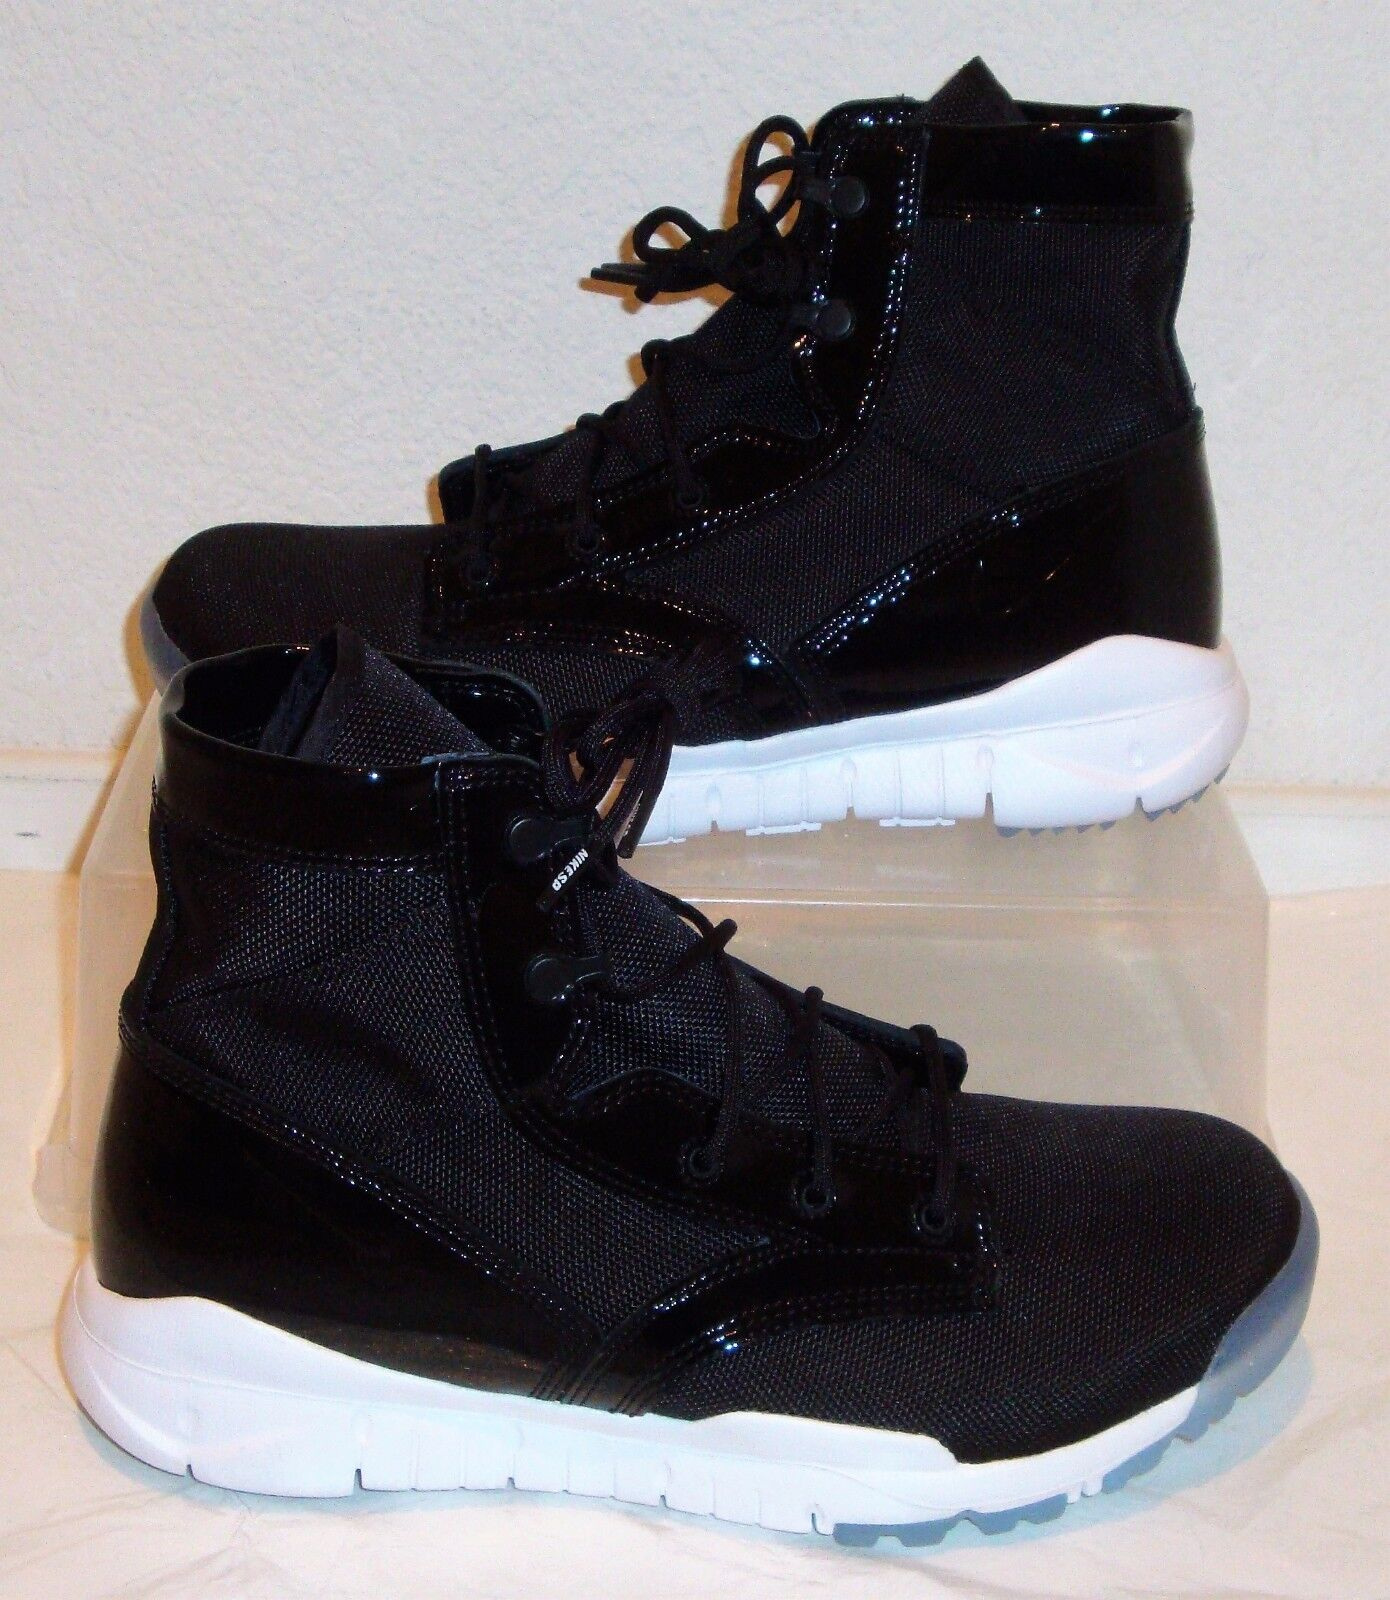 Brand New Nike Shoes SFB 6